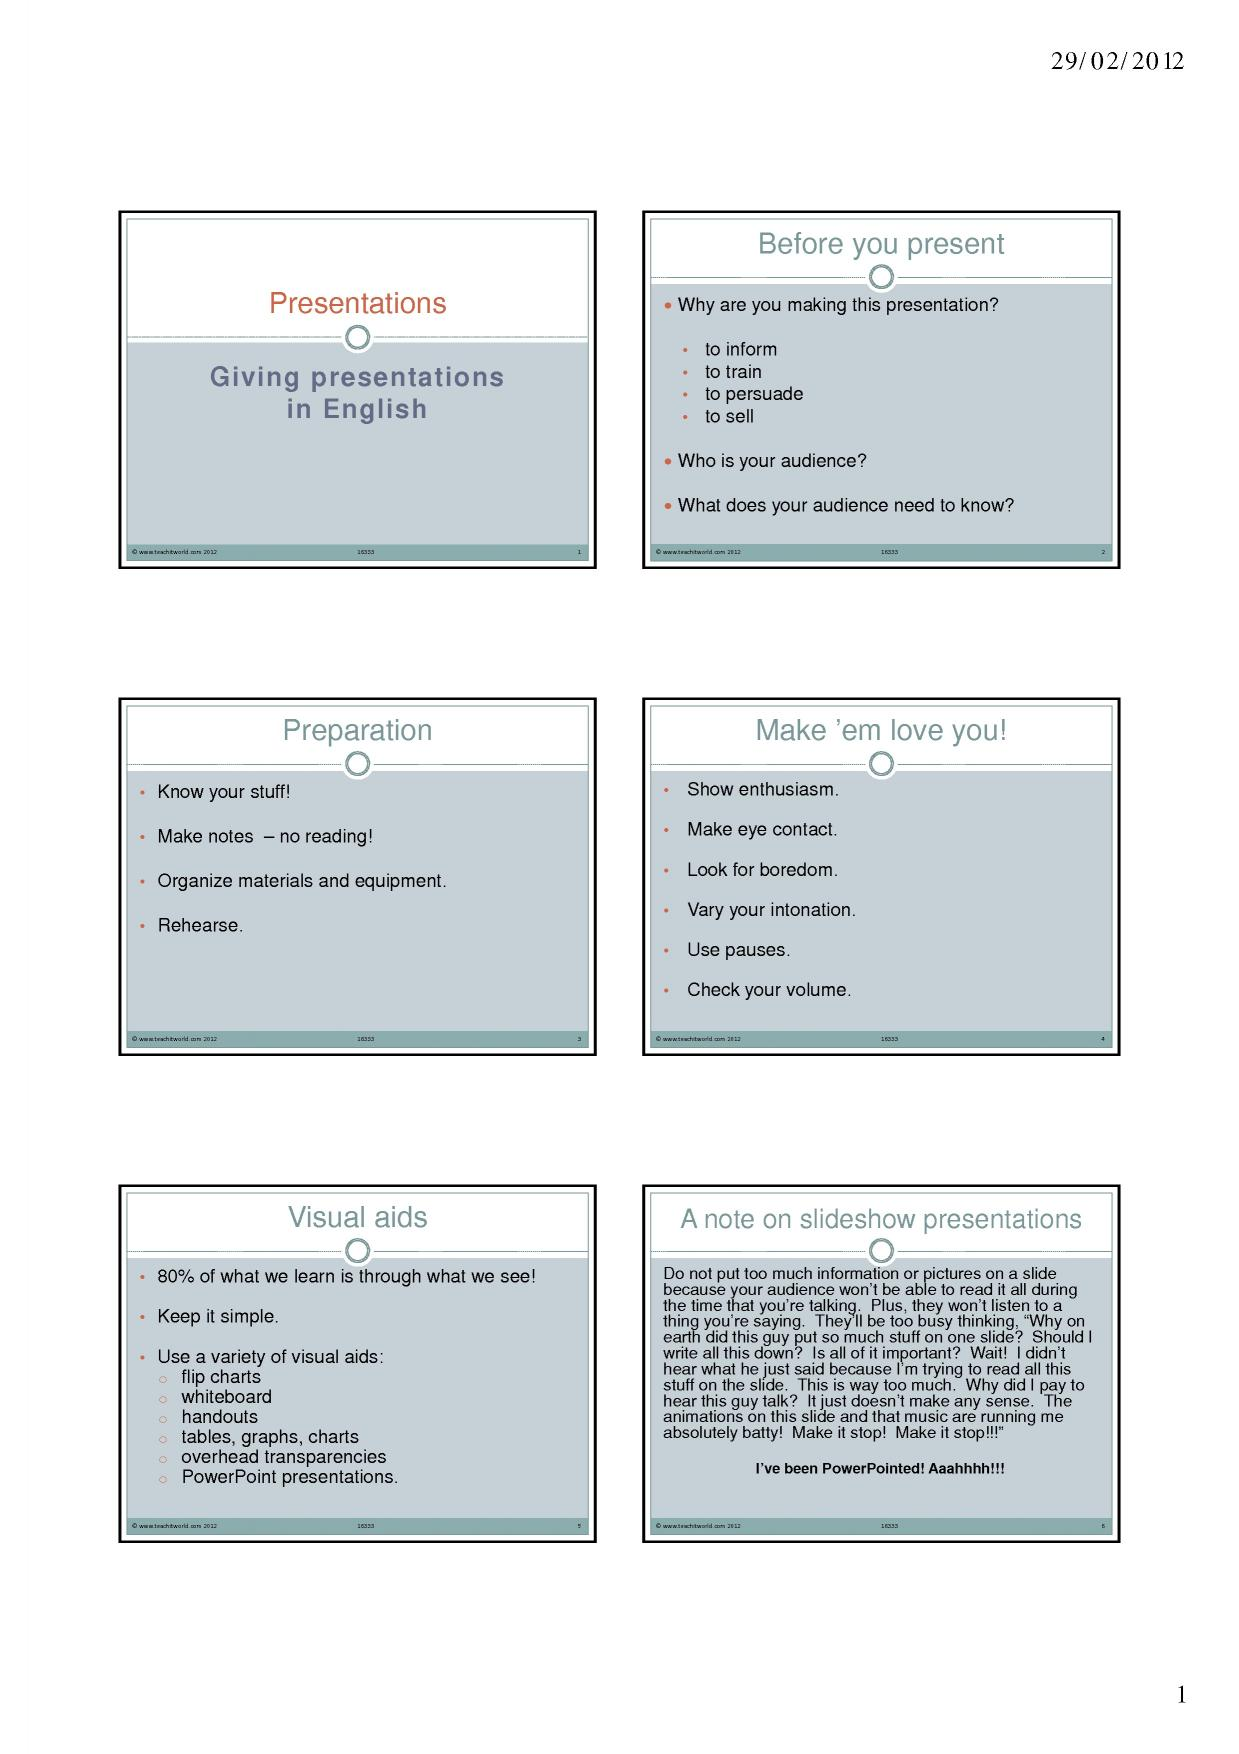 Making a presentation: language and phrases (1)